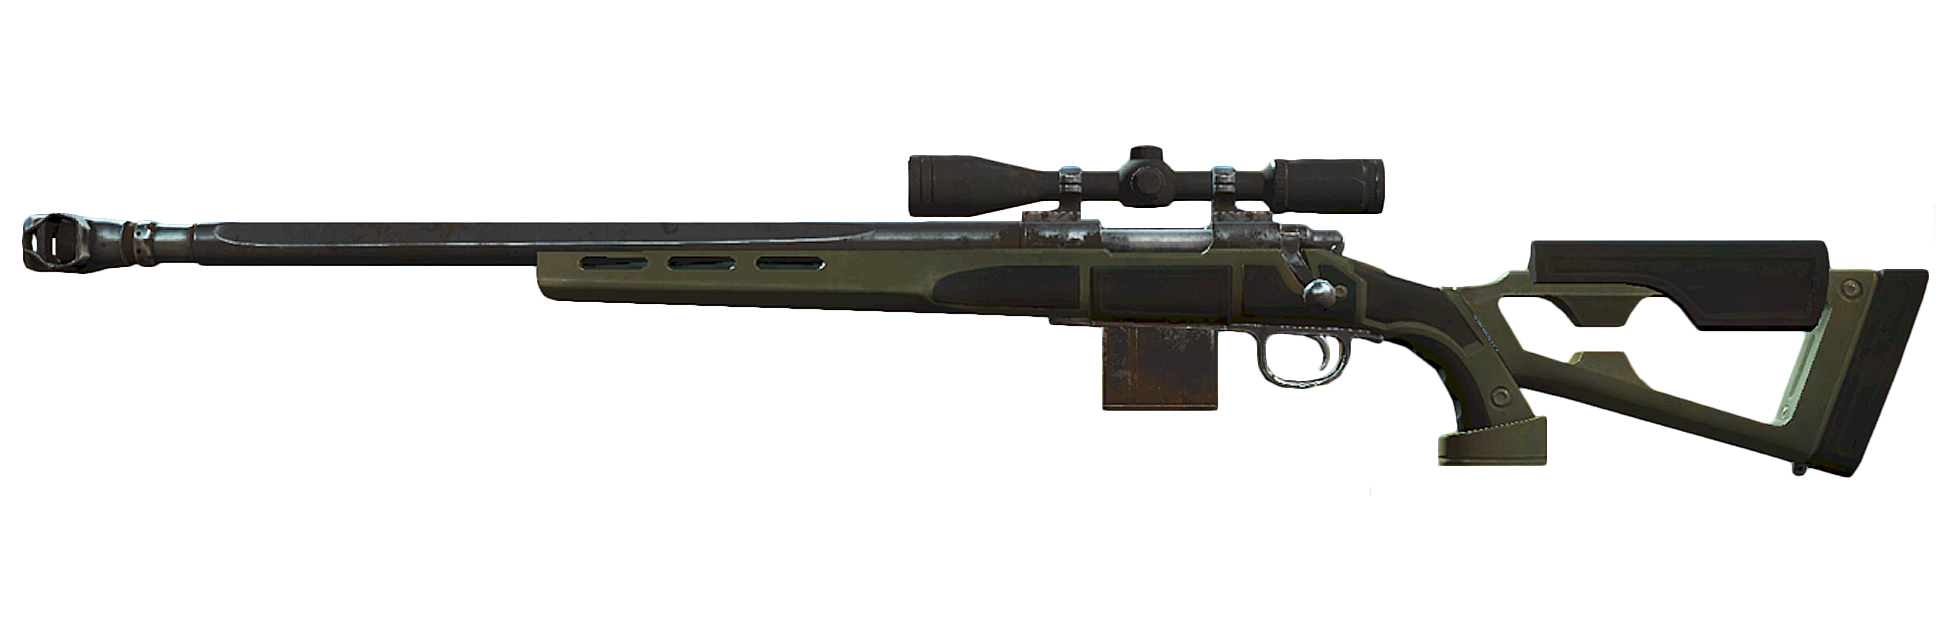 Rifle png. Image fo sniper fallout